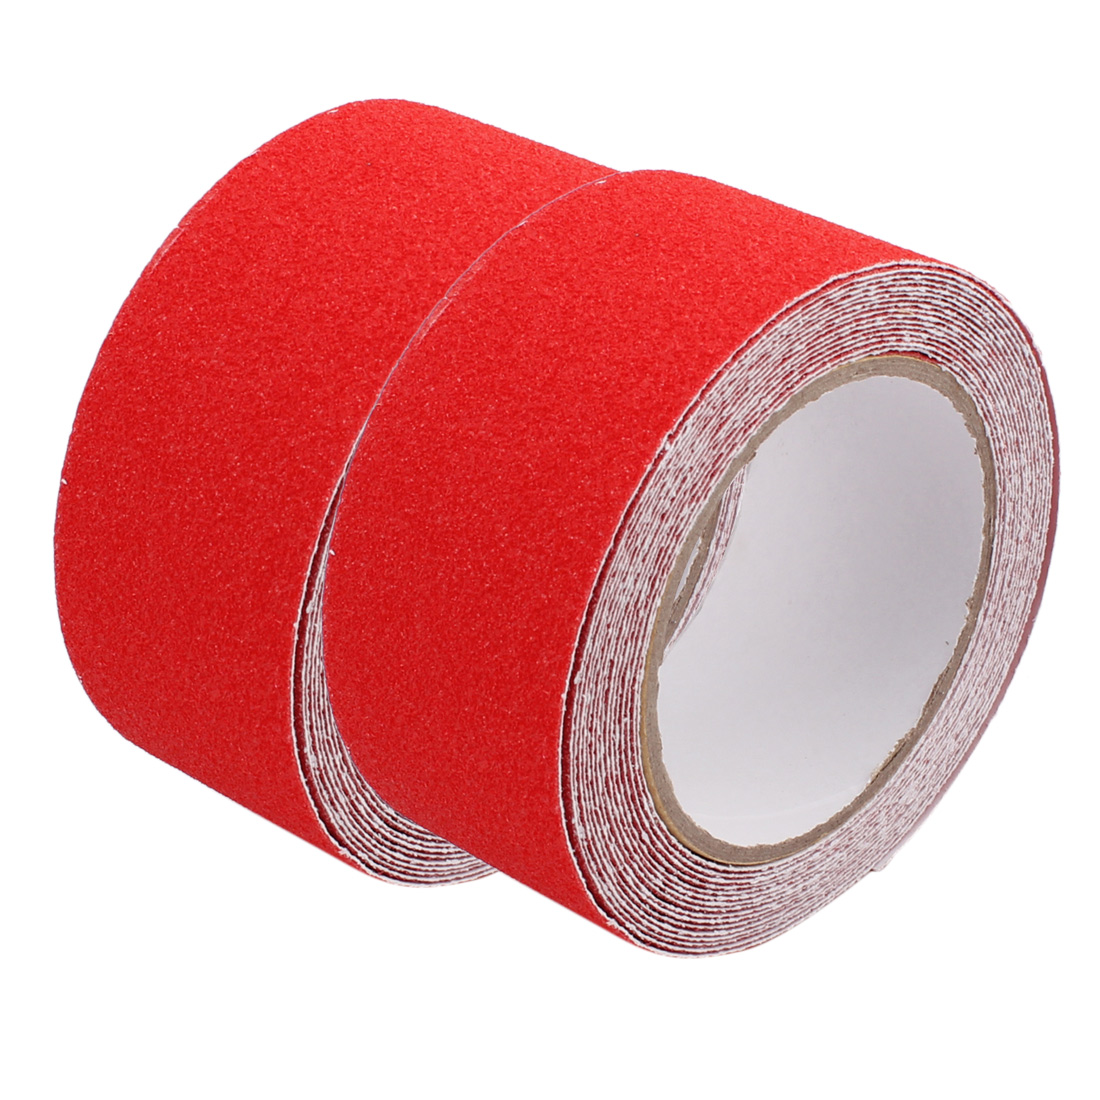 2Pcs Red Non-Slip Grip Tape Safety High Traction Indoor Outdoor 50mmx5m